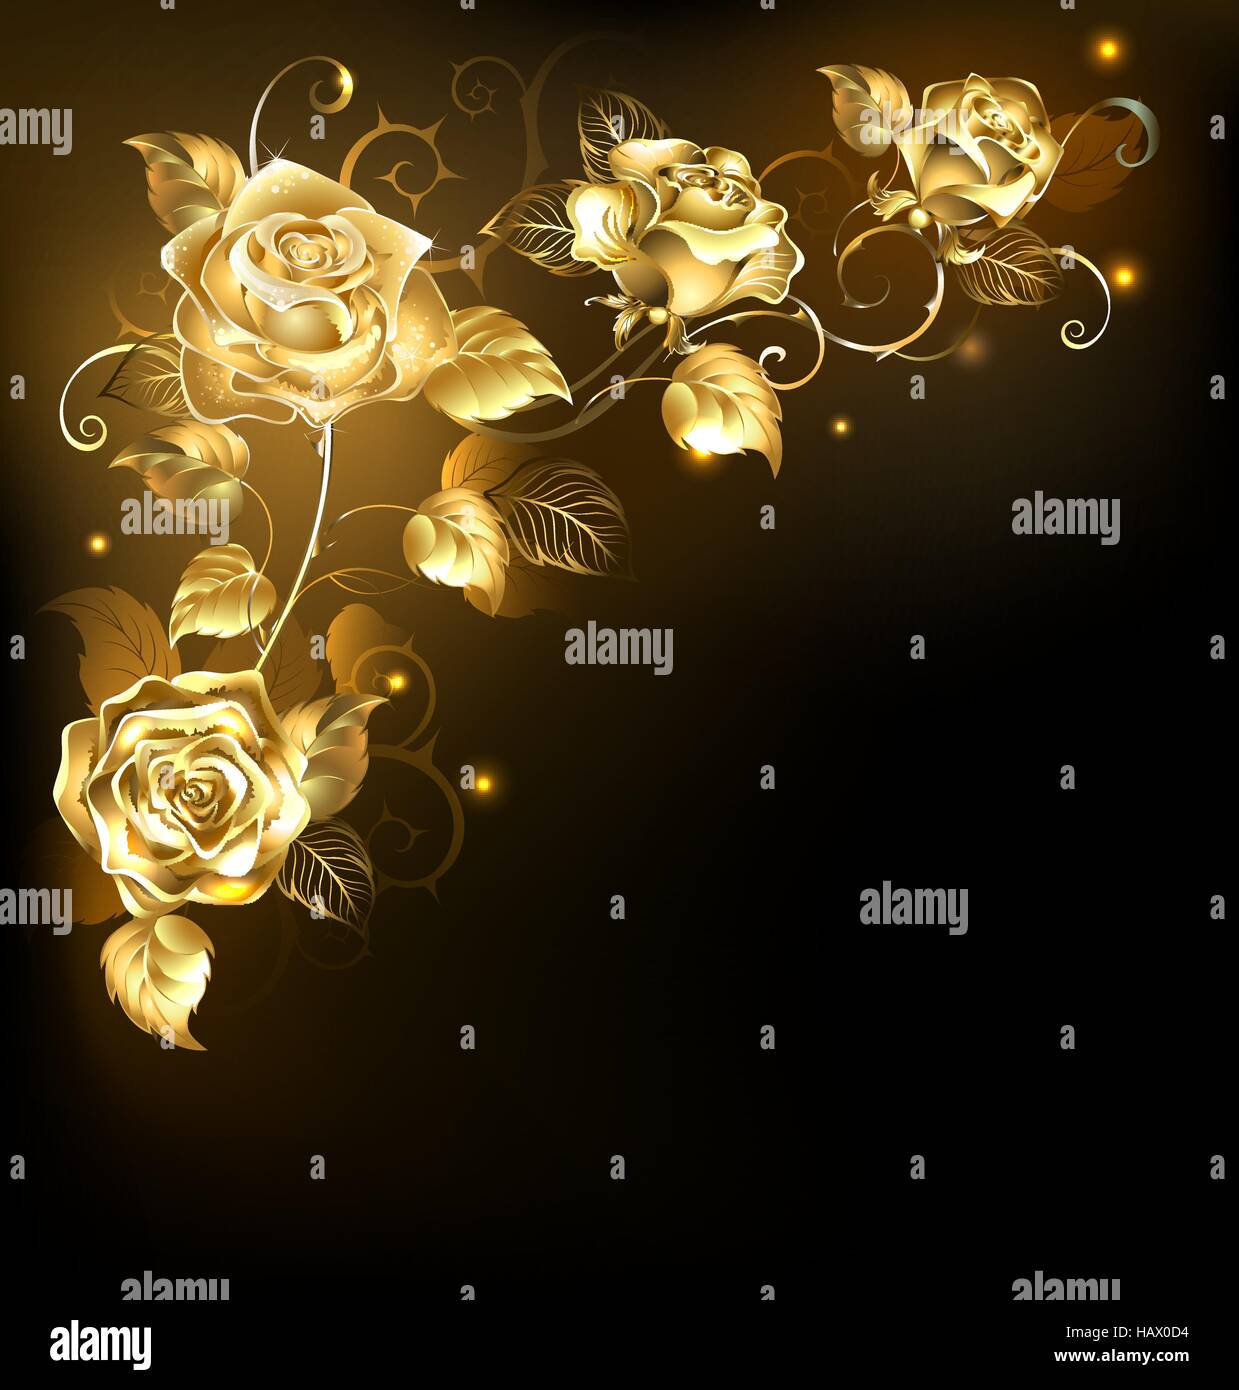 Twisted gold roses on a black background. Gold rose. - Stock Vector